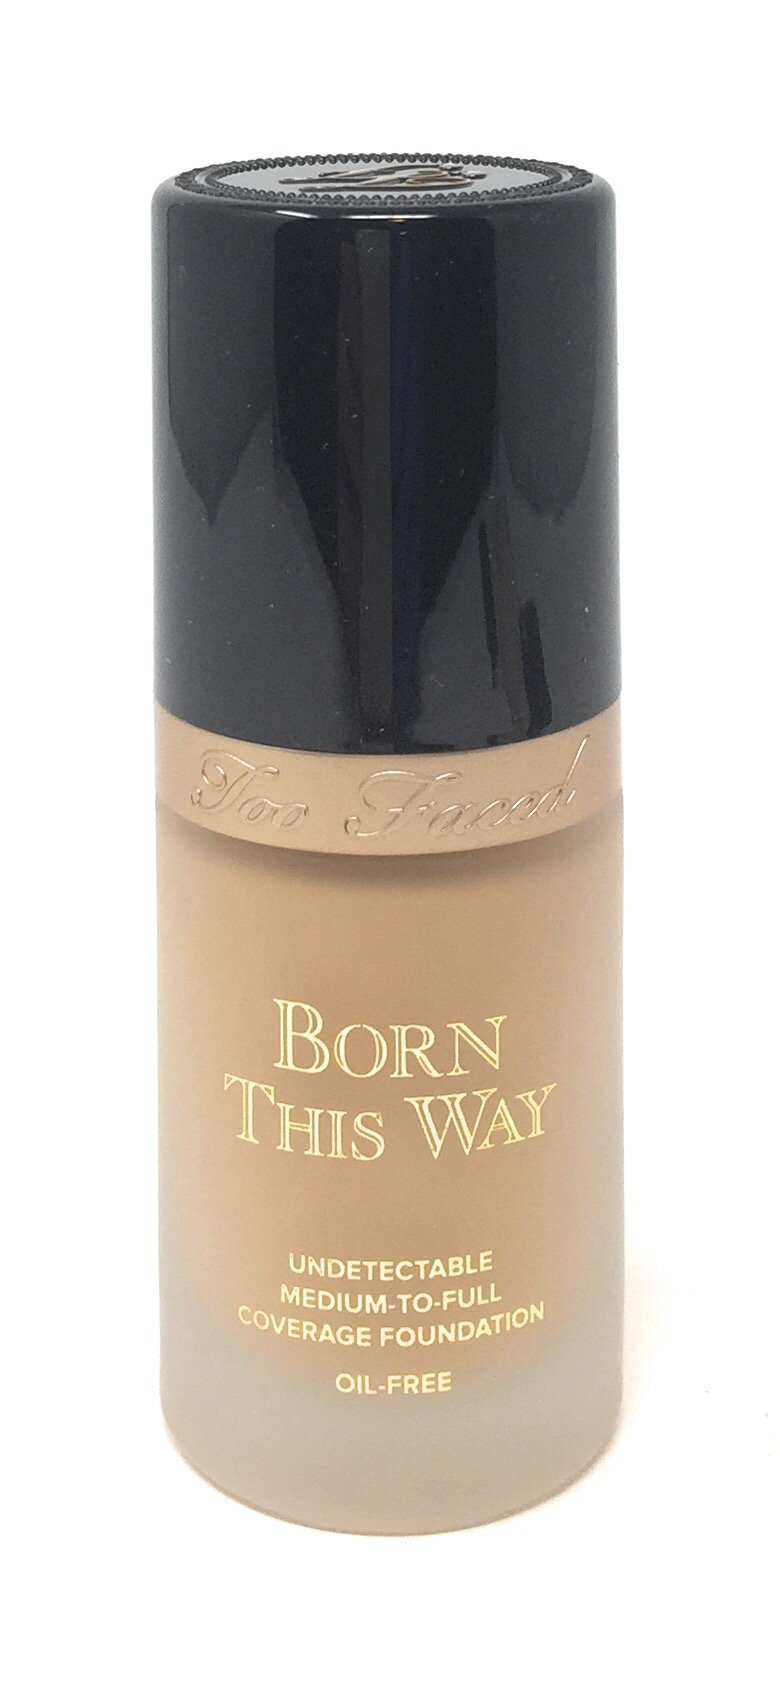 Too Faced Born This Way Medium-to-Full Coverage Foundation in Light Beige 1 OZ by Too Faced